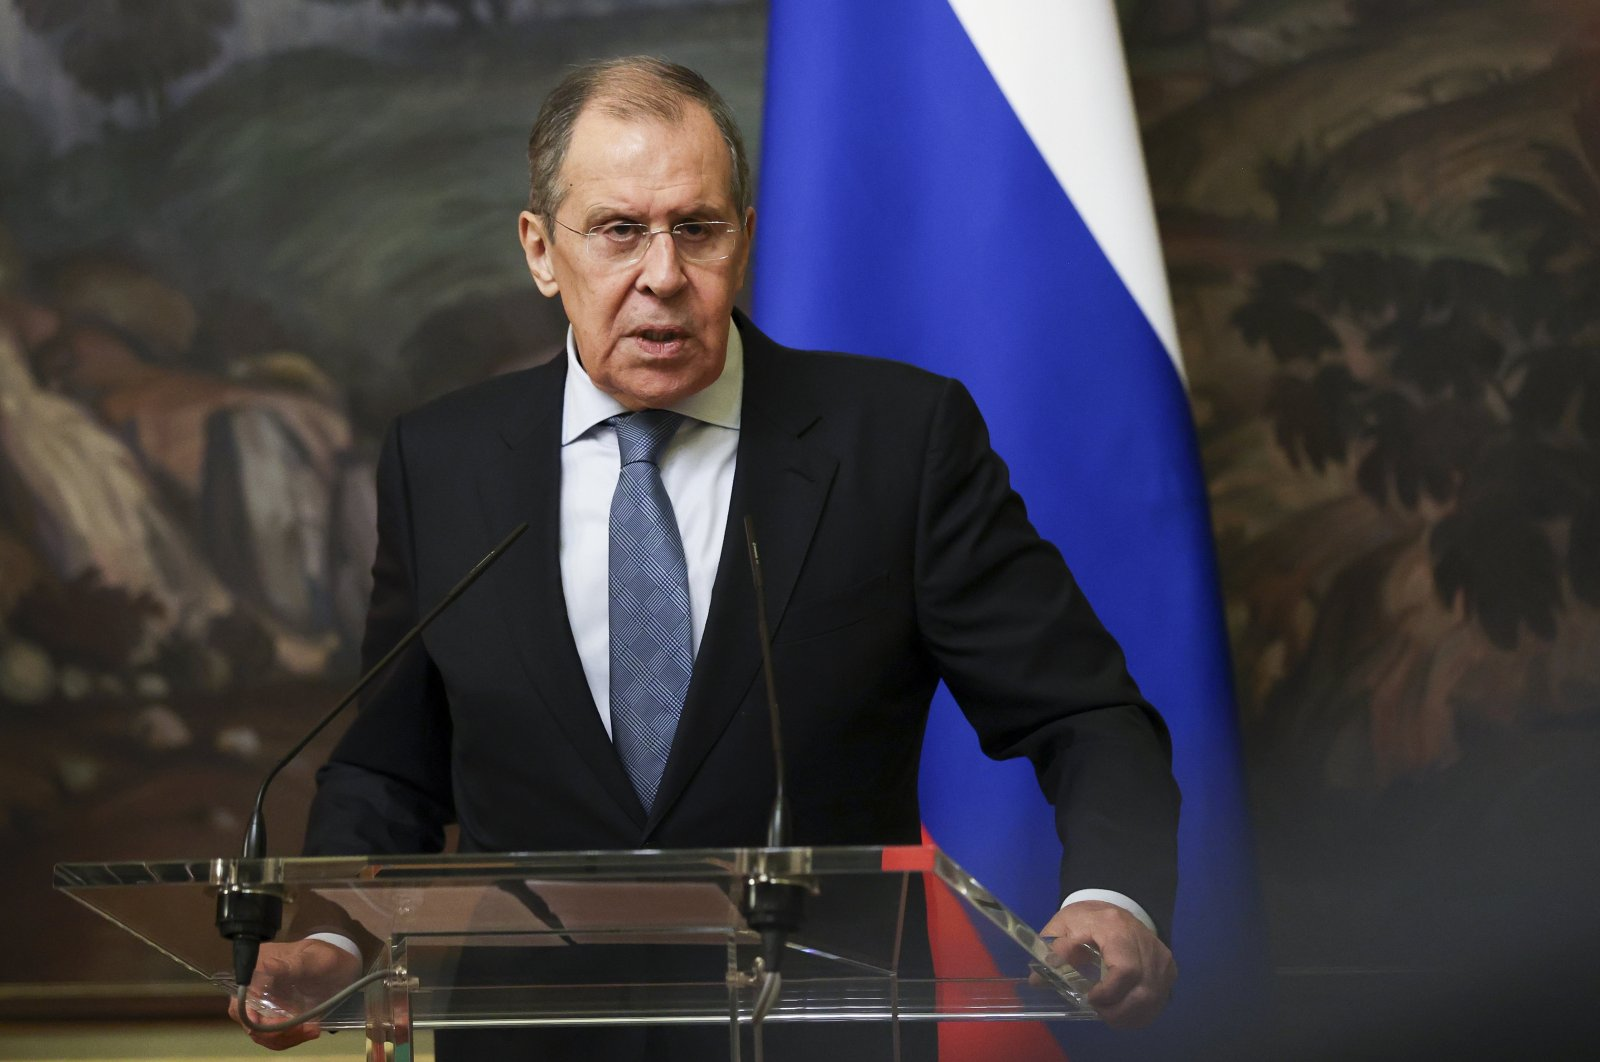 In this handout photo released by the Russian Foreign Ministry Press Service, Russian Foreign Minister Sergey Lavrov speaks during a joint news conference with Belarus Foreign Minister Vladimir Makei, following their talks in Moscow, Russia, Wednesday, Sept. 2, 2020. (AP Photo)